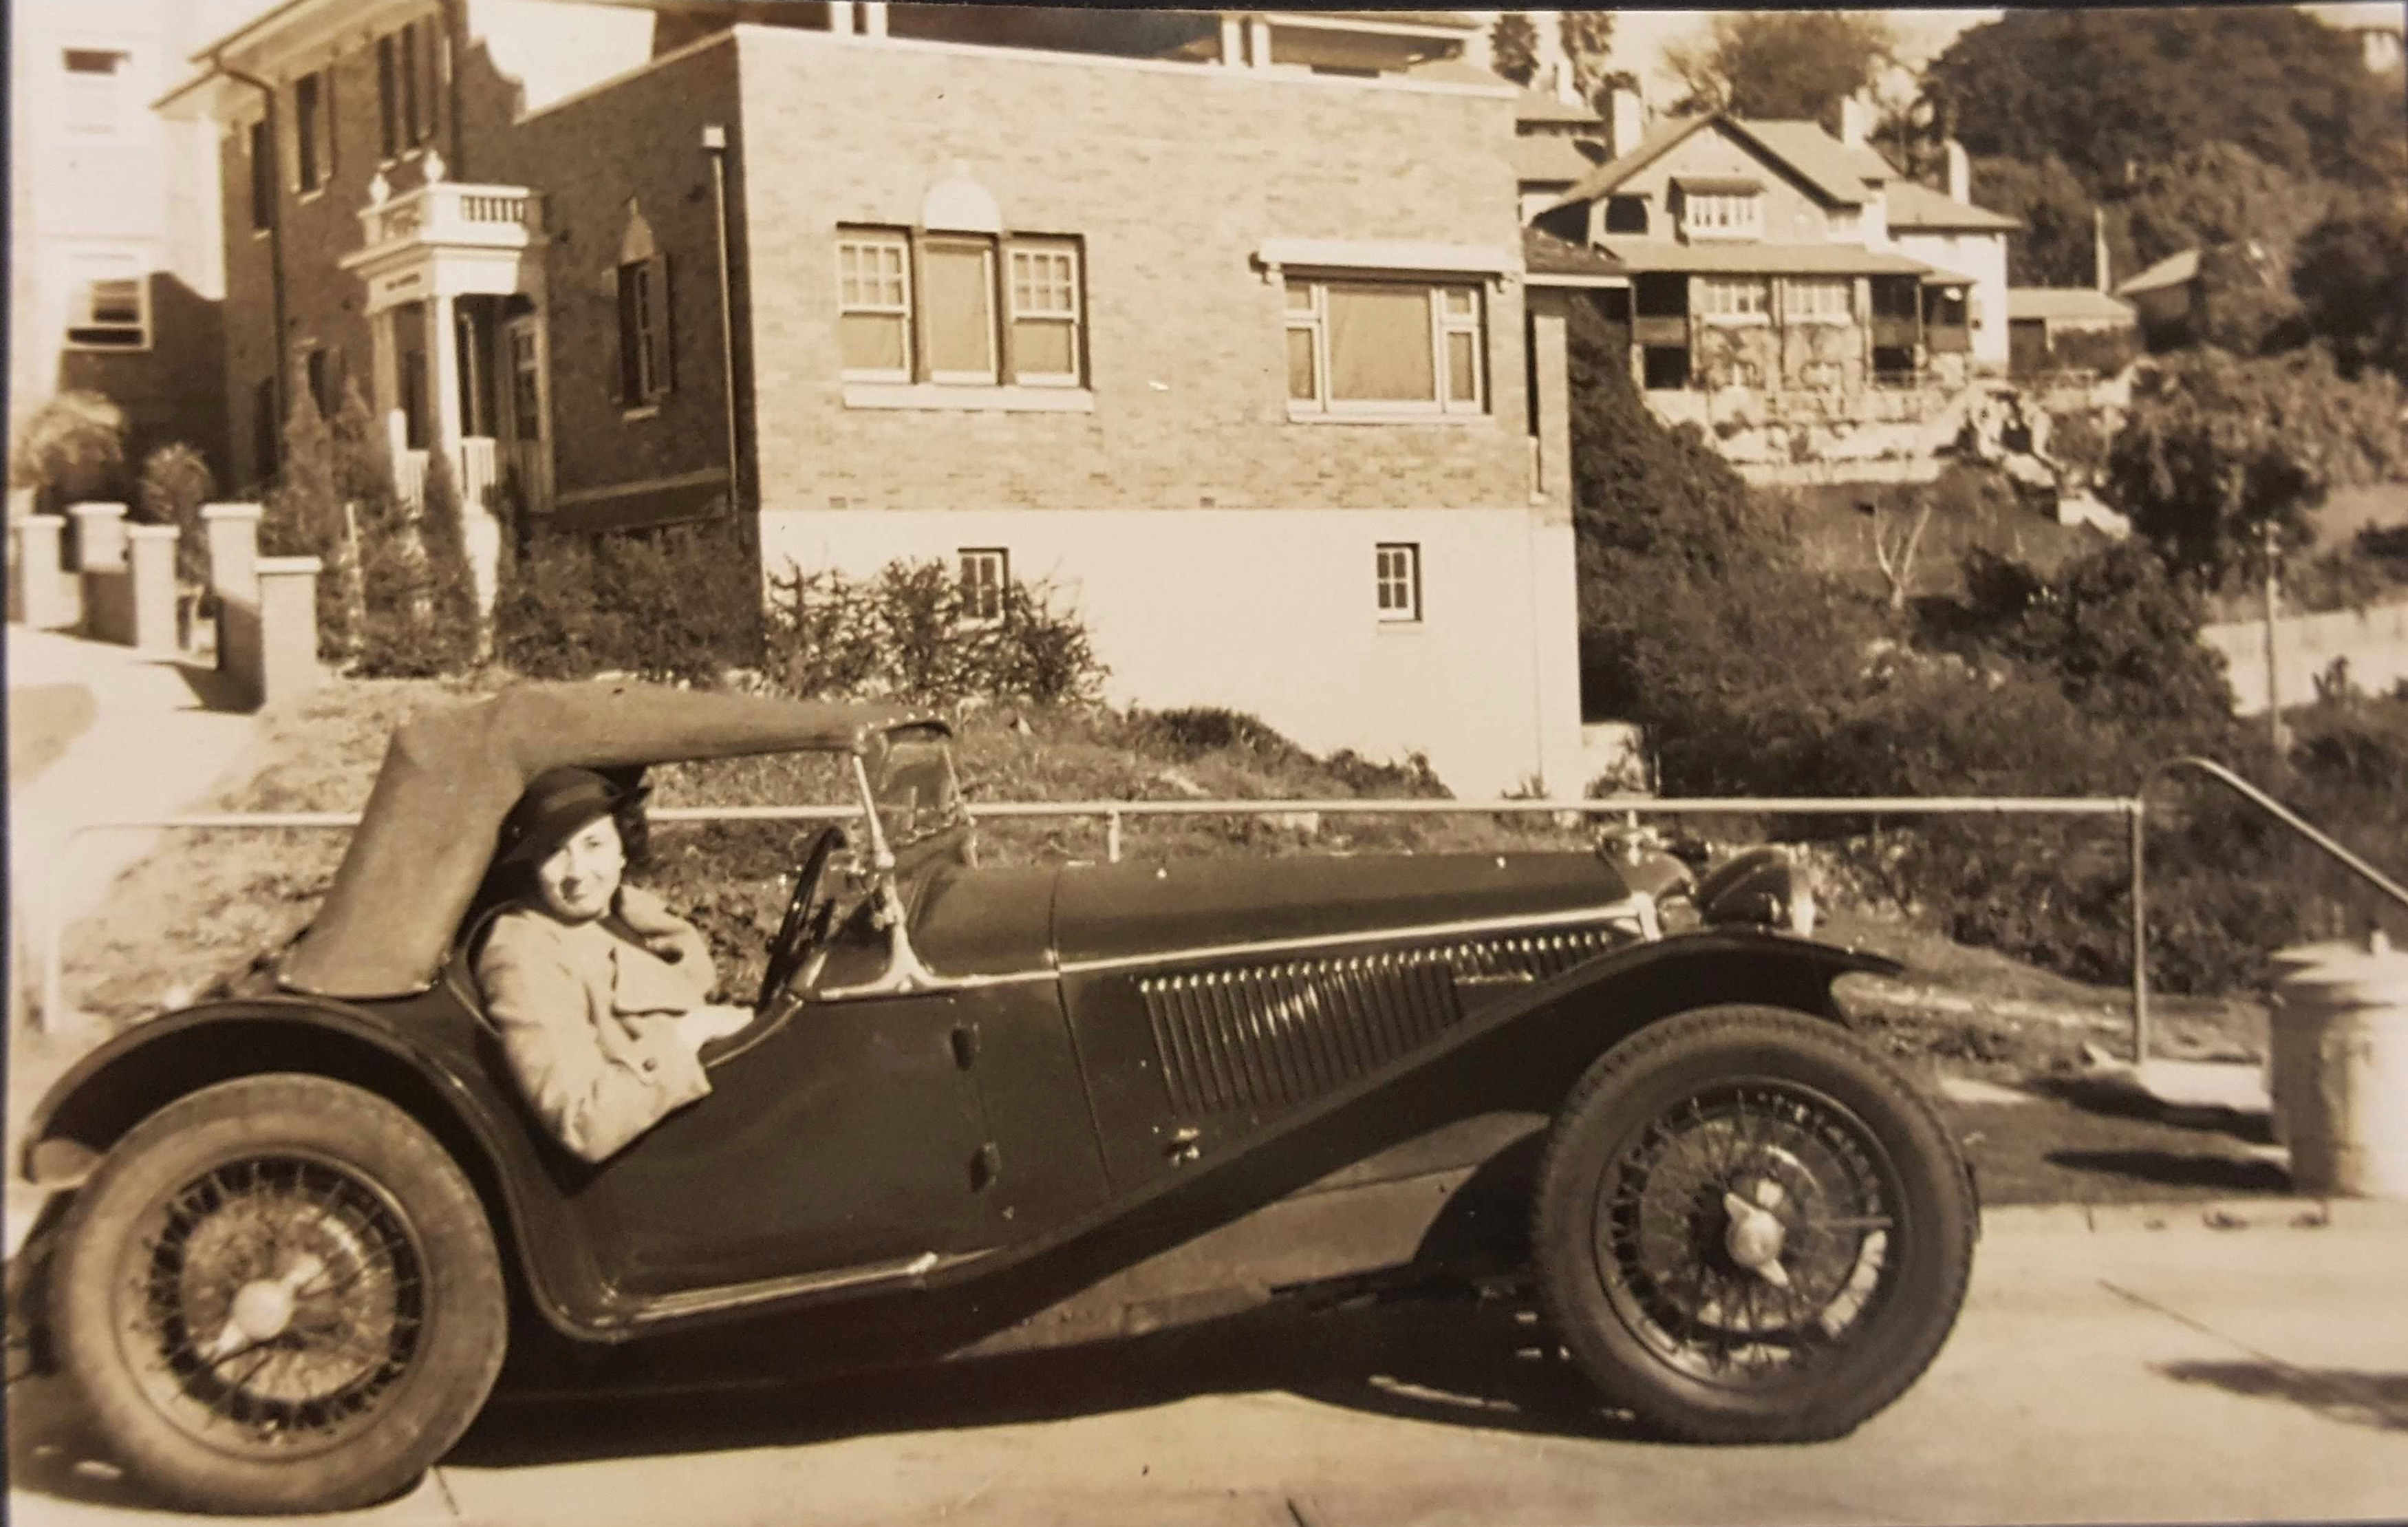 Marcia Clark in her Riley Imp, Point Piper Sydney, 1936, photographer unknown, vintage gelatin silver print